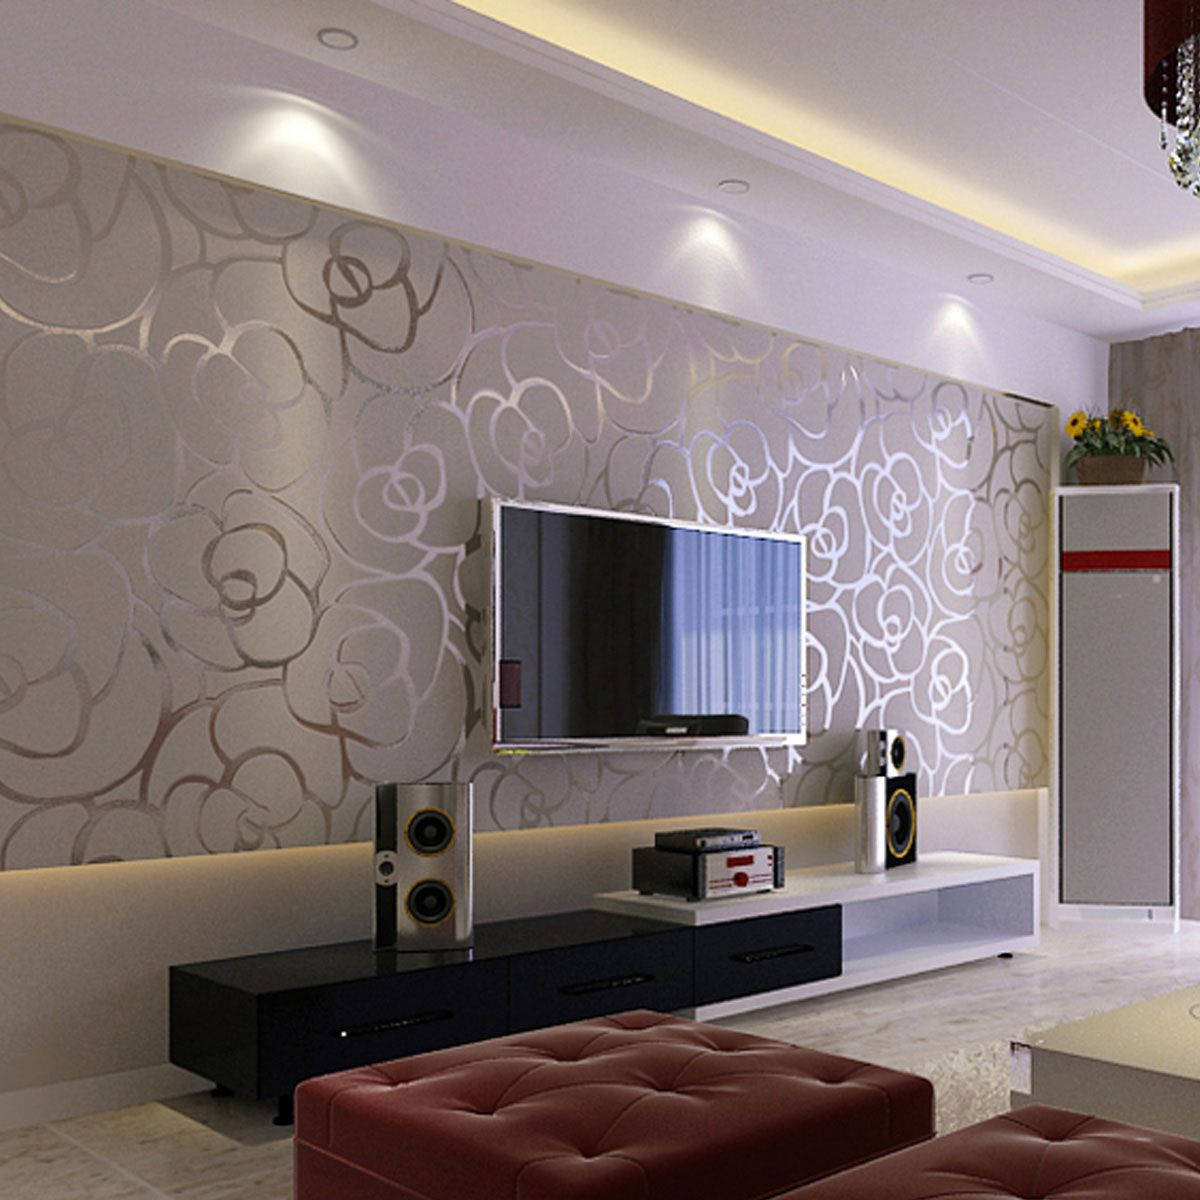 Modern Wallpaper Ideas Modern Wallpaper Living Room Wallpaper Living Room Modern Wallpaper Designs